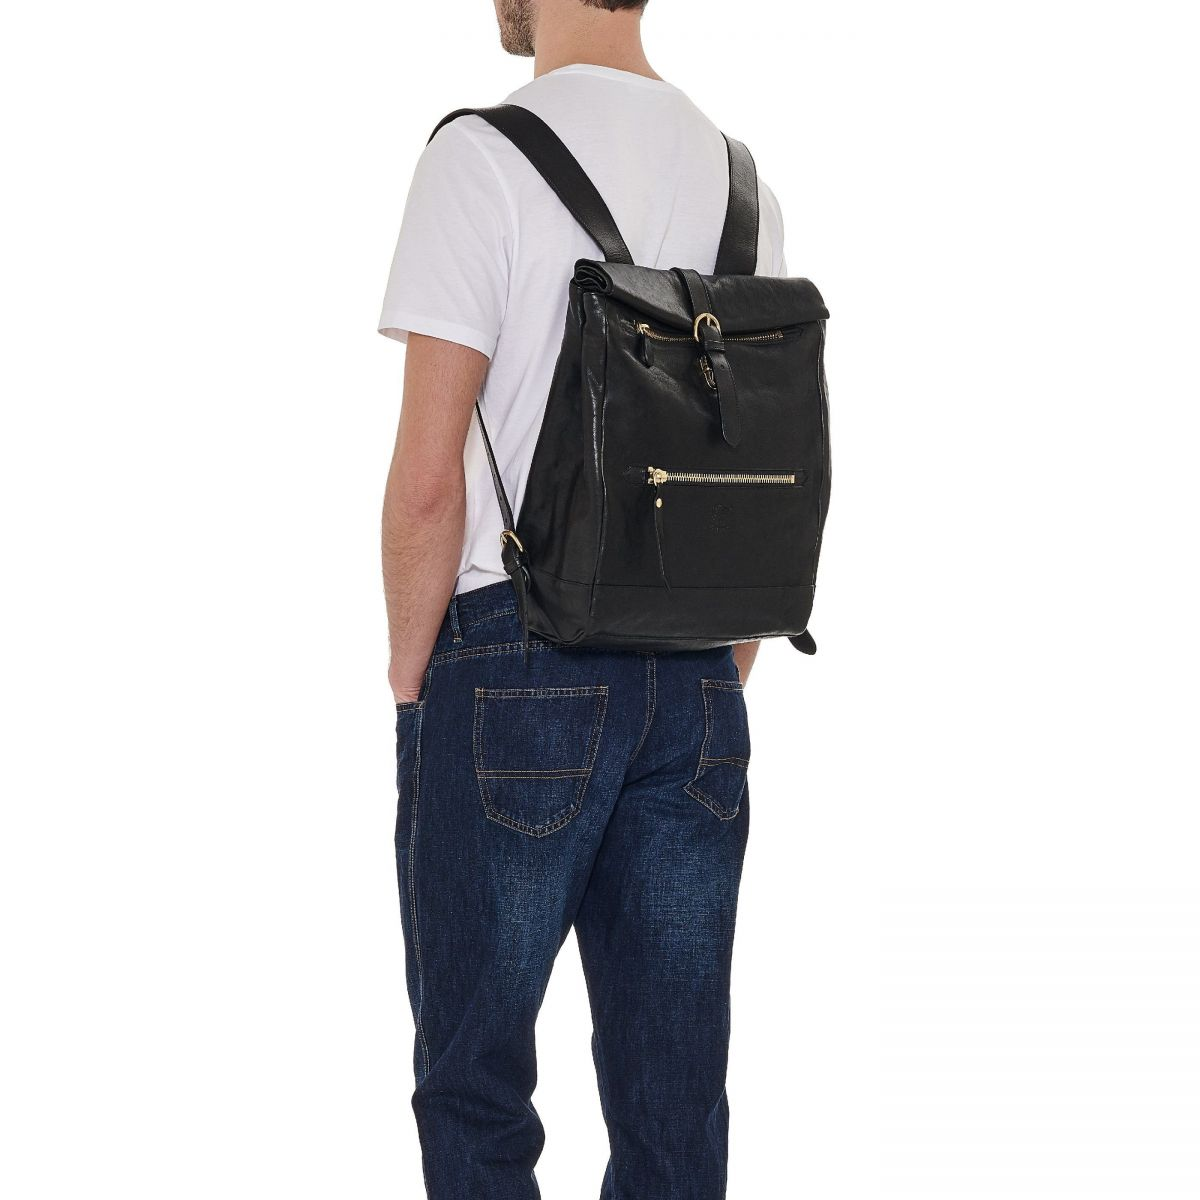 Men's Backpack Capalbio in Vintage Cowhide Leather BBA028 color Black | Details